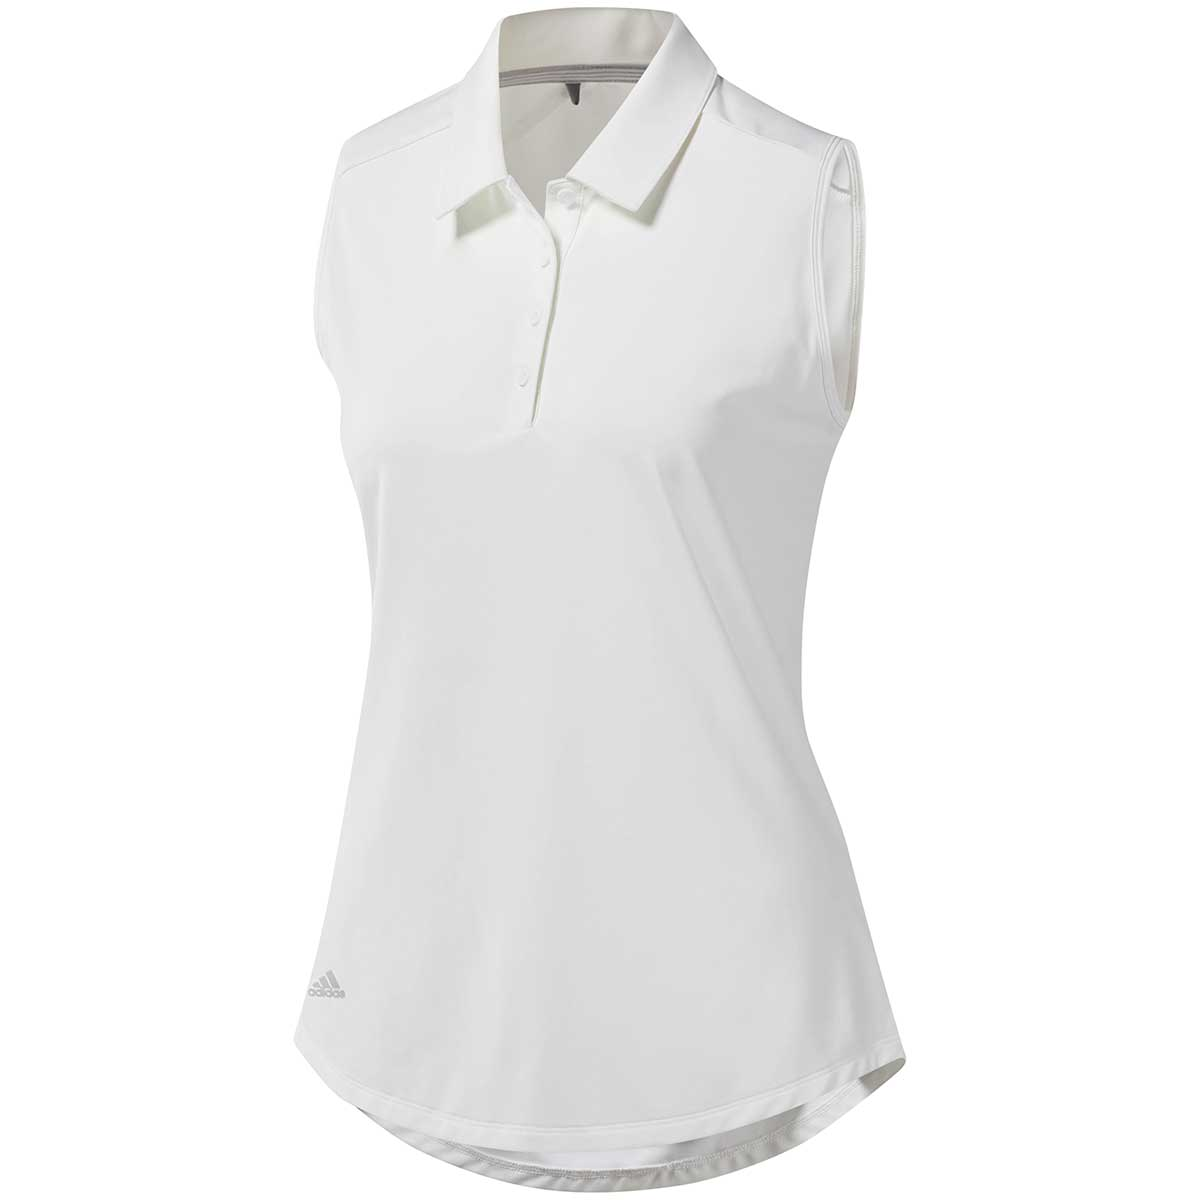 Adidas Women's Ultimate365 Sleeveless Polo Shirt - White